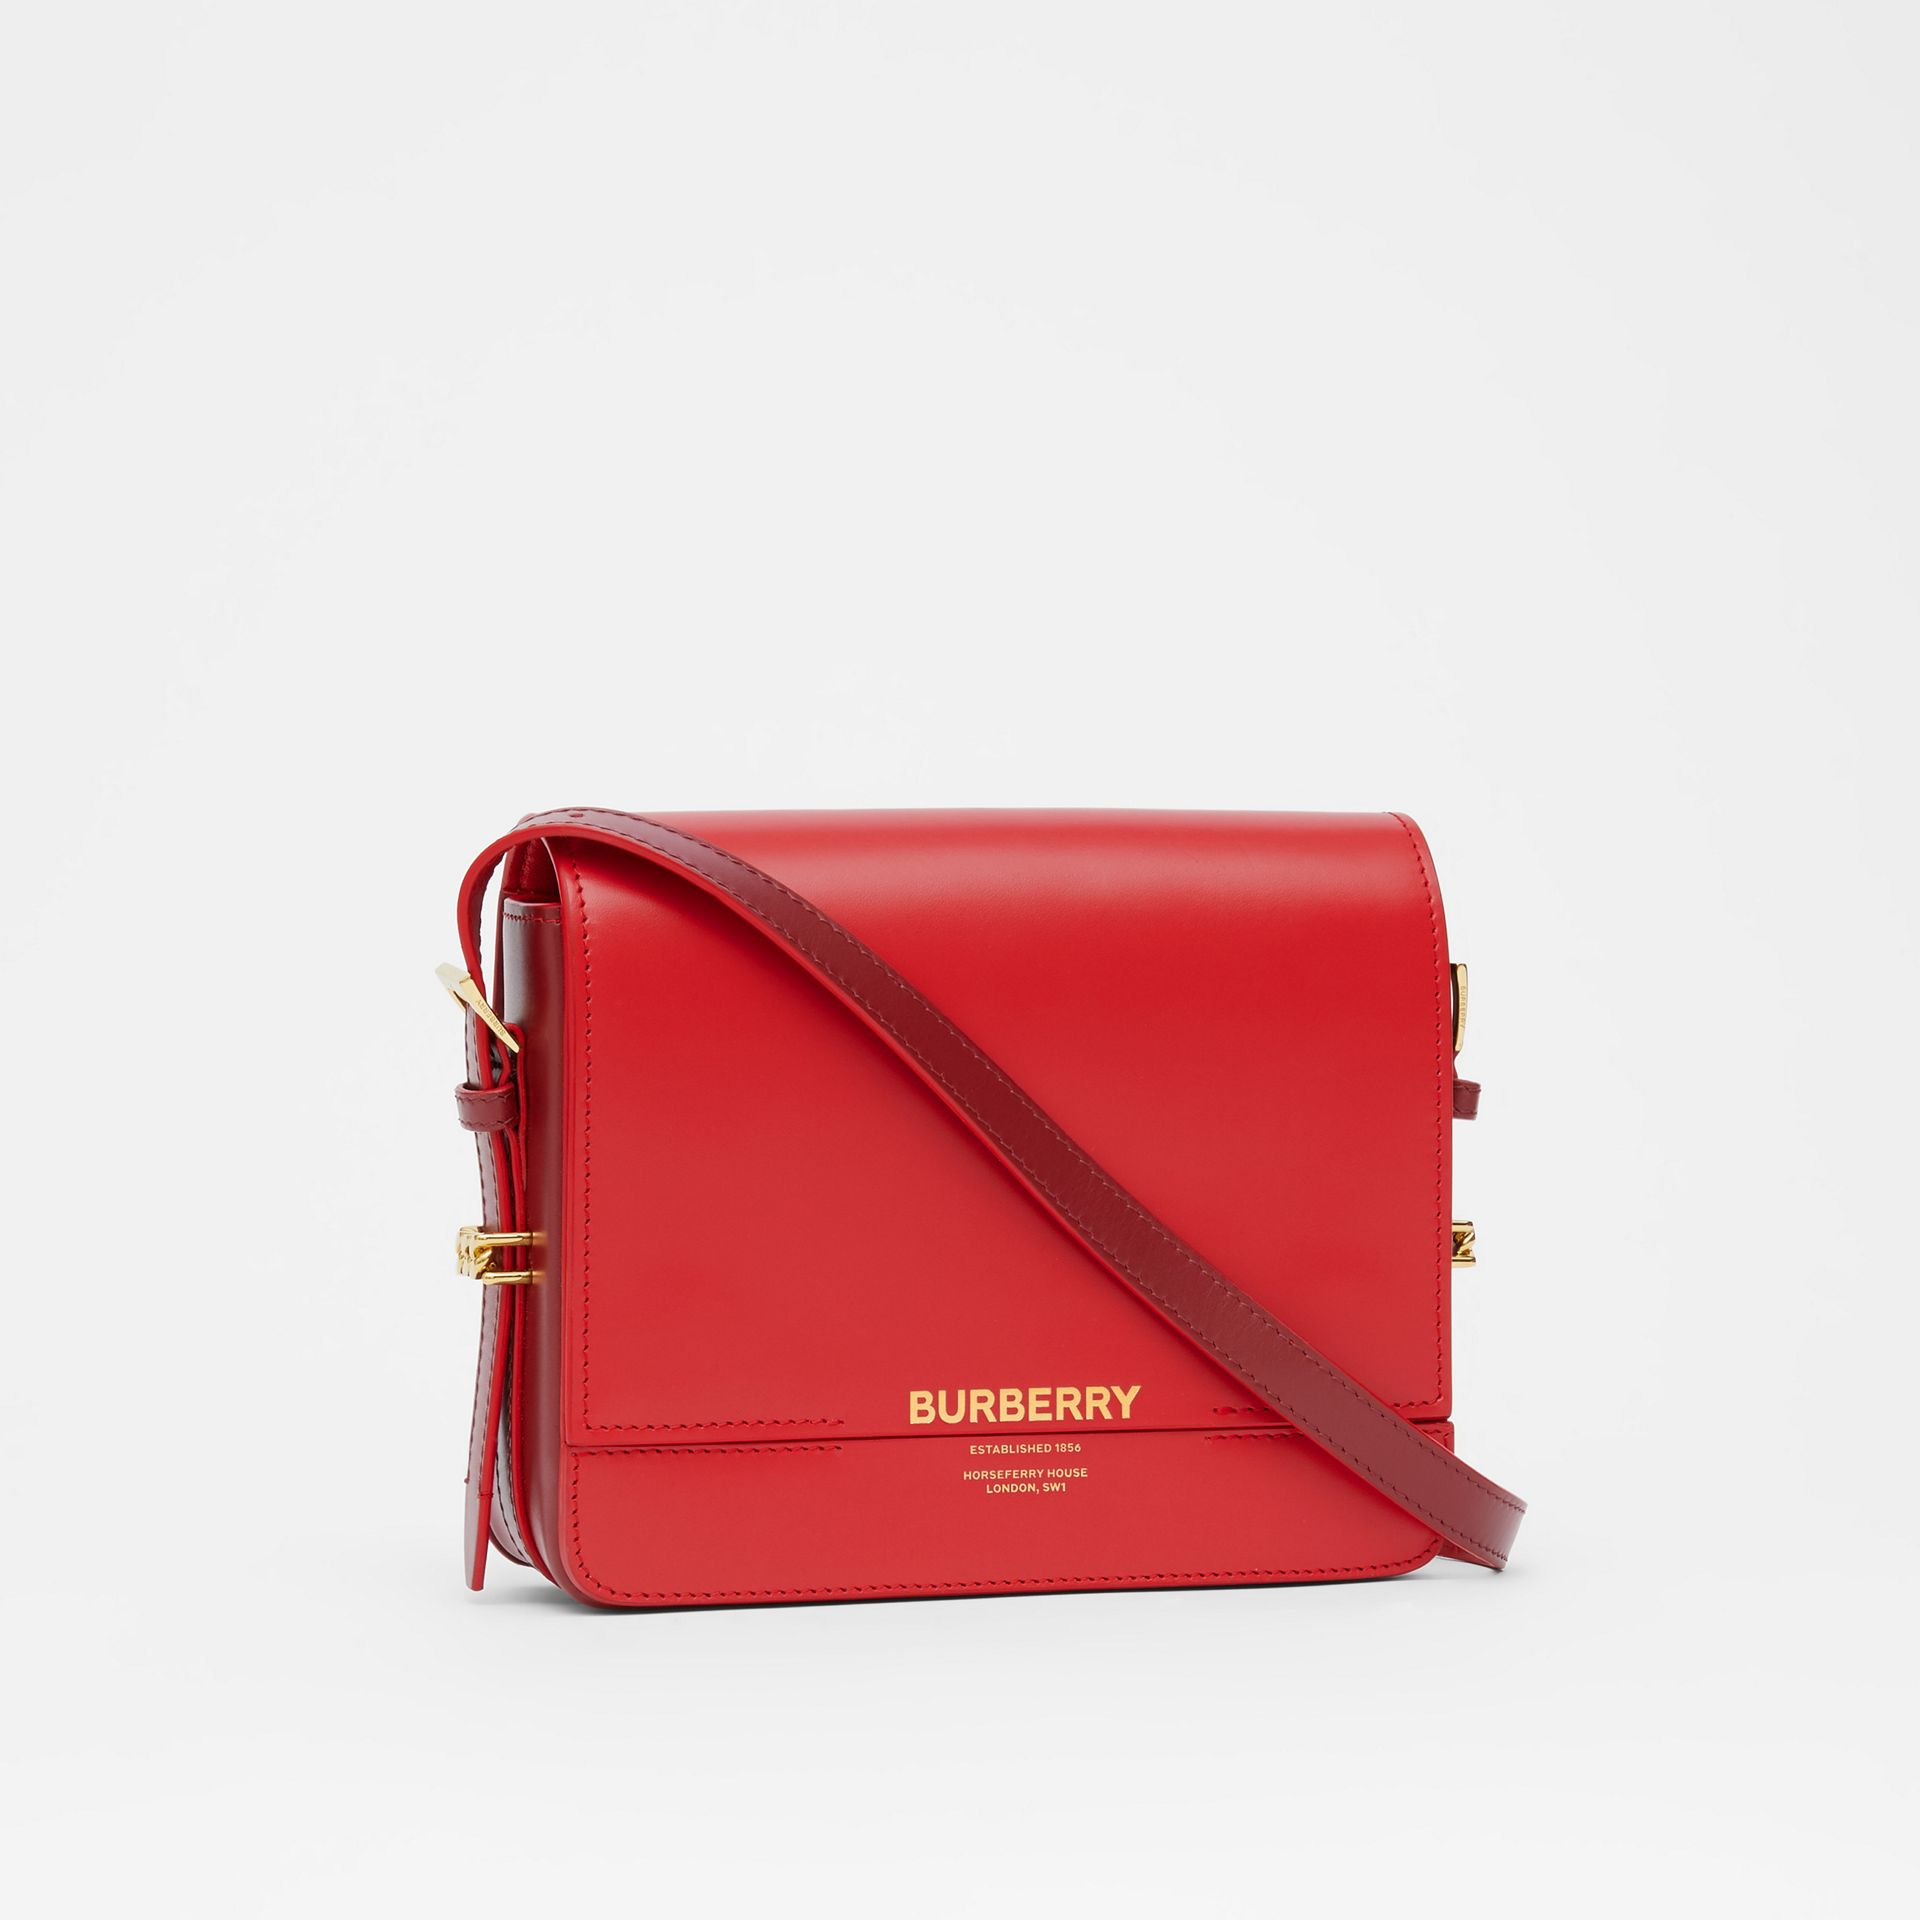 Small Two-tone Leather Grace Bag in Bright Red/burgundy - Women | Burberry - gallery image 6